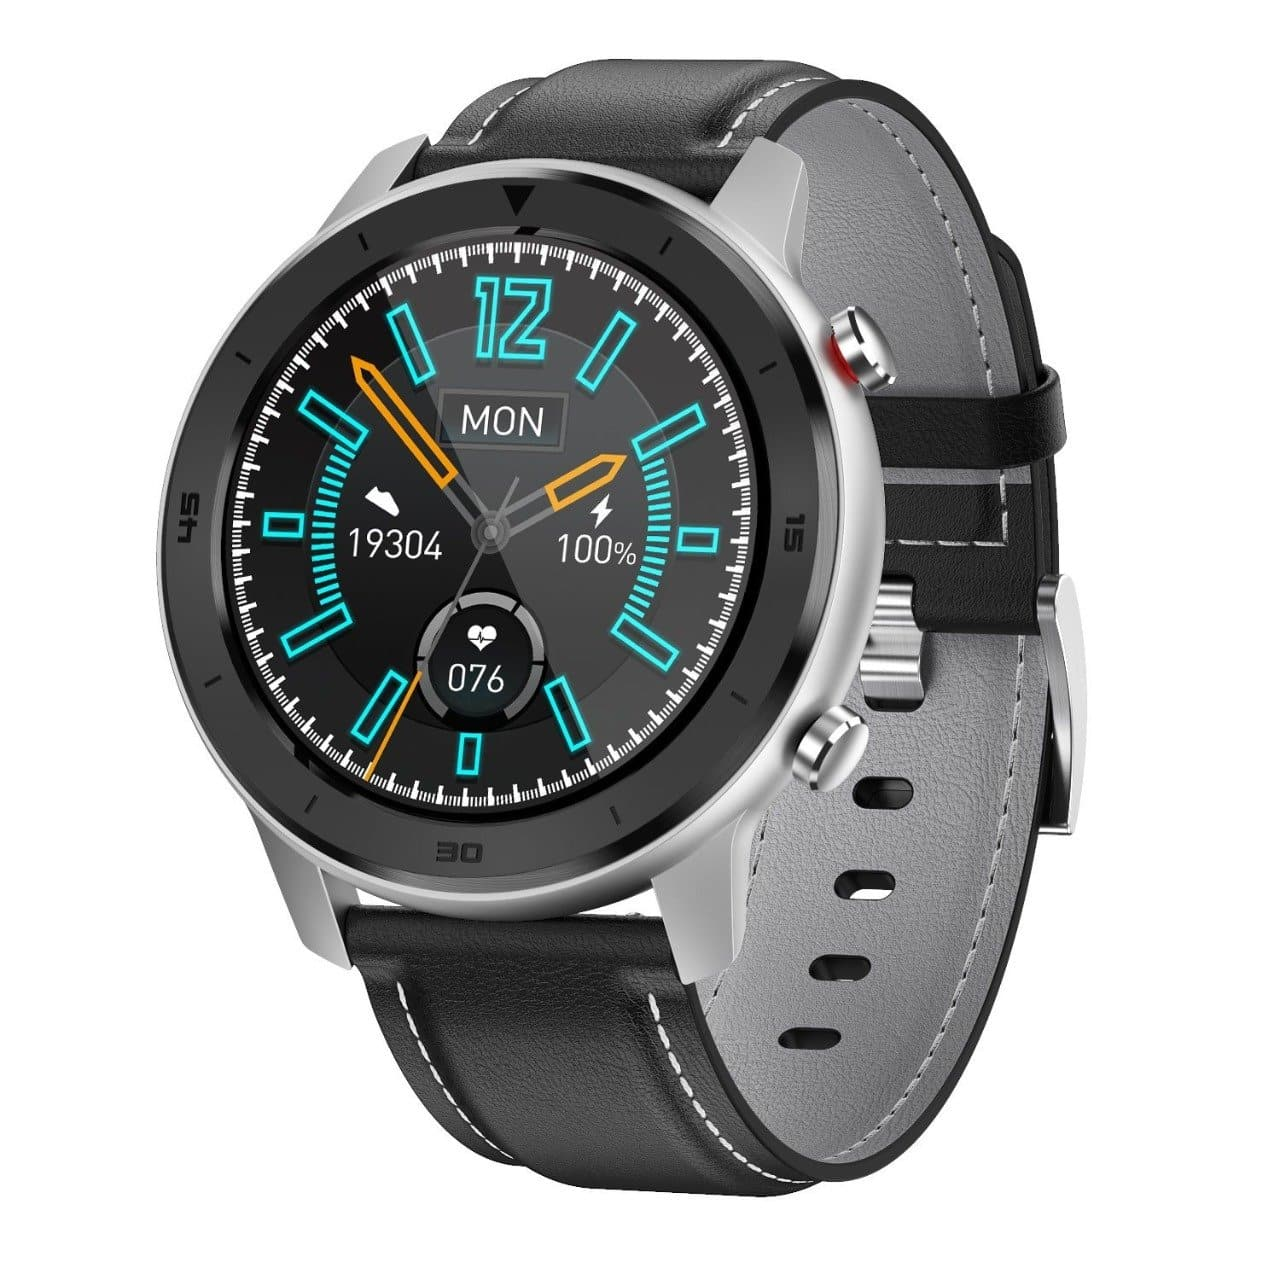 DT78 Smart Watch Men IP68 Waterproof-Export Fit